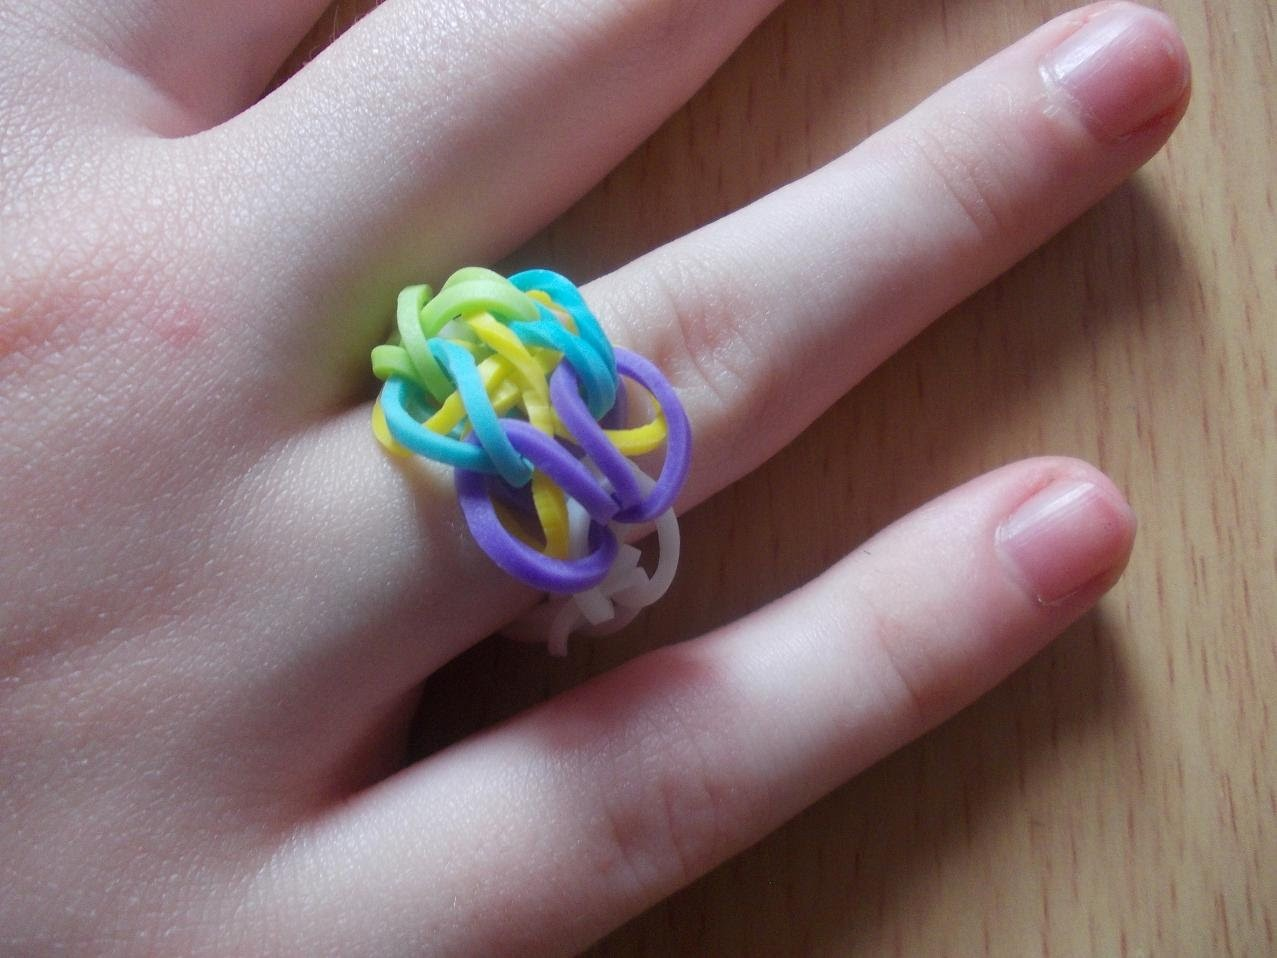 Rainbow Loom Bands Anleitung deutsch - Schmetterlingsring - Rubber Bandz Butterfly ring tutorial